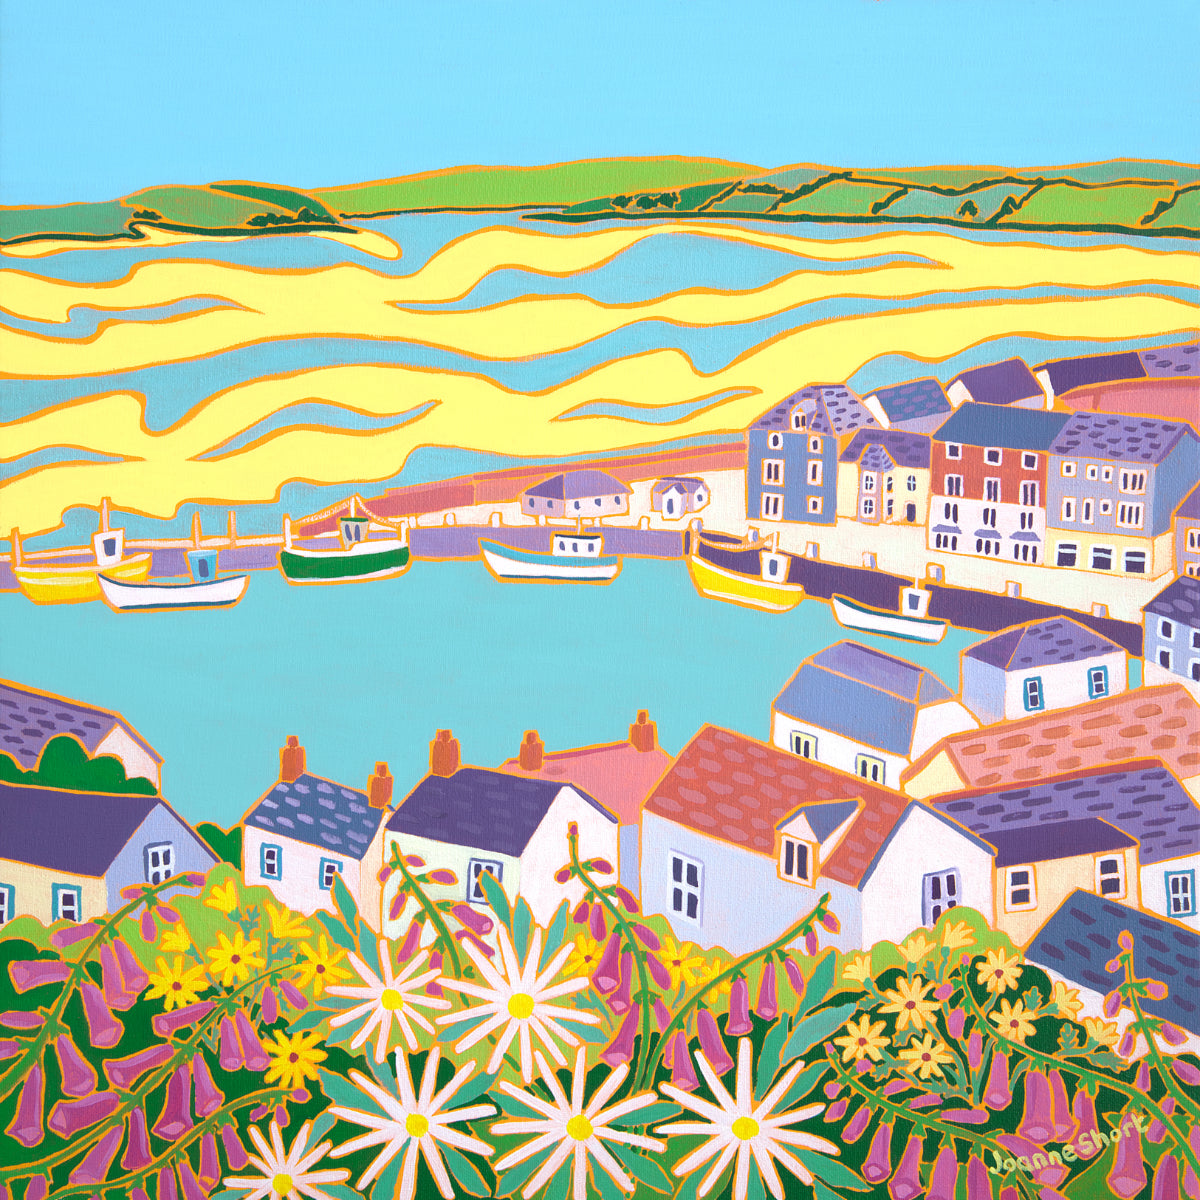 Original Painting by Joanne Short. Estuary View, Padstow.